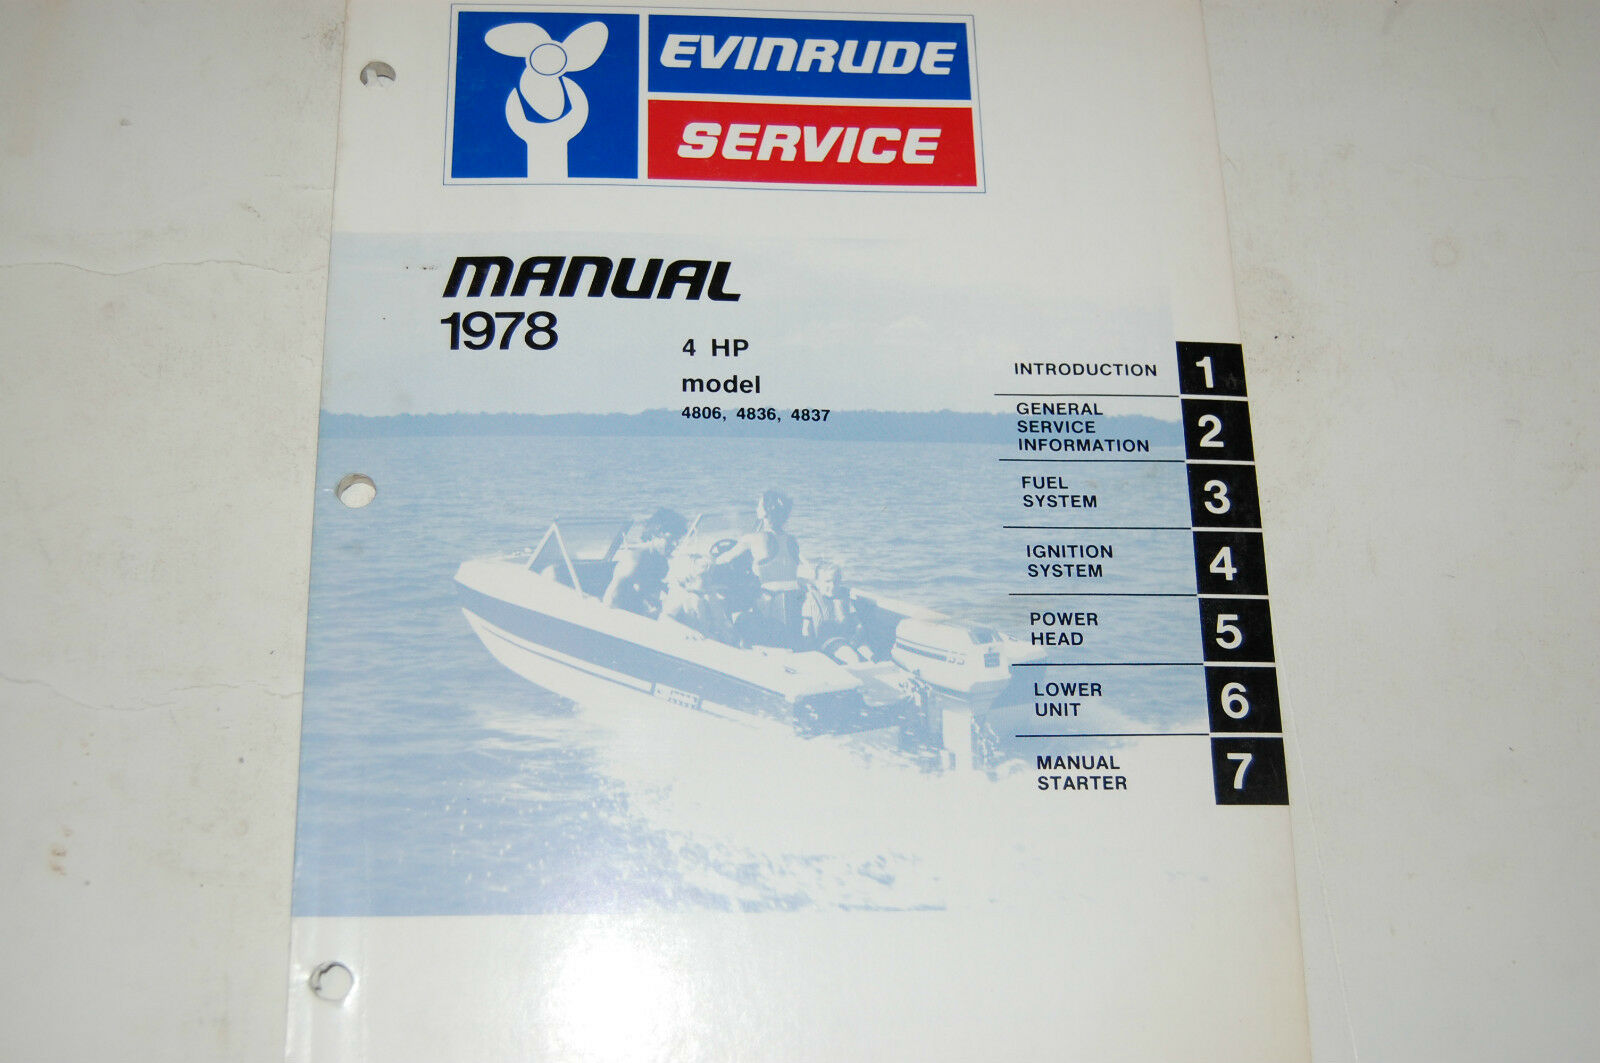 1978 evinrude outboard service manual hp 4 model 4806 4836 4836 omc # 5392  1 of 3Only 1 available ...